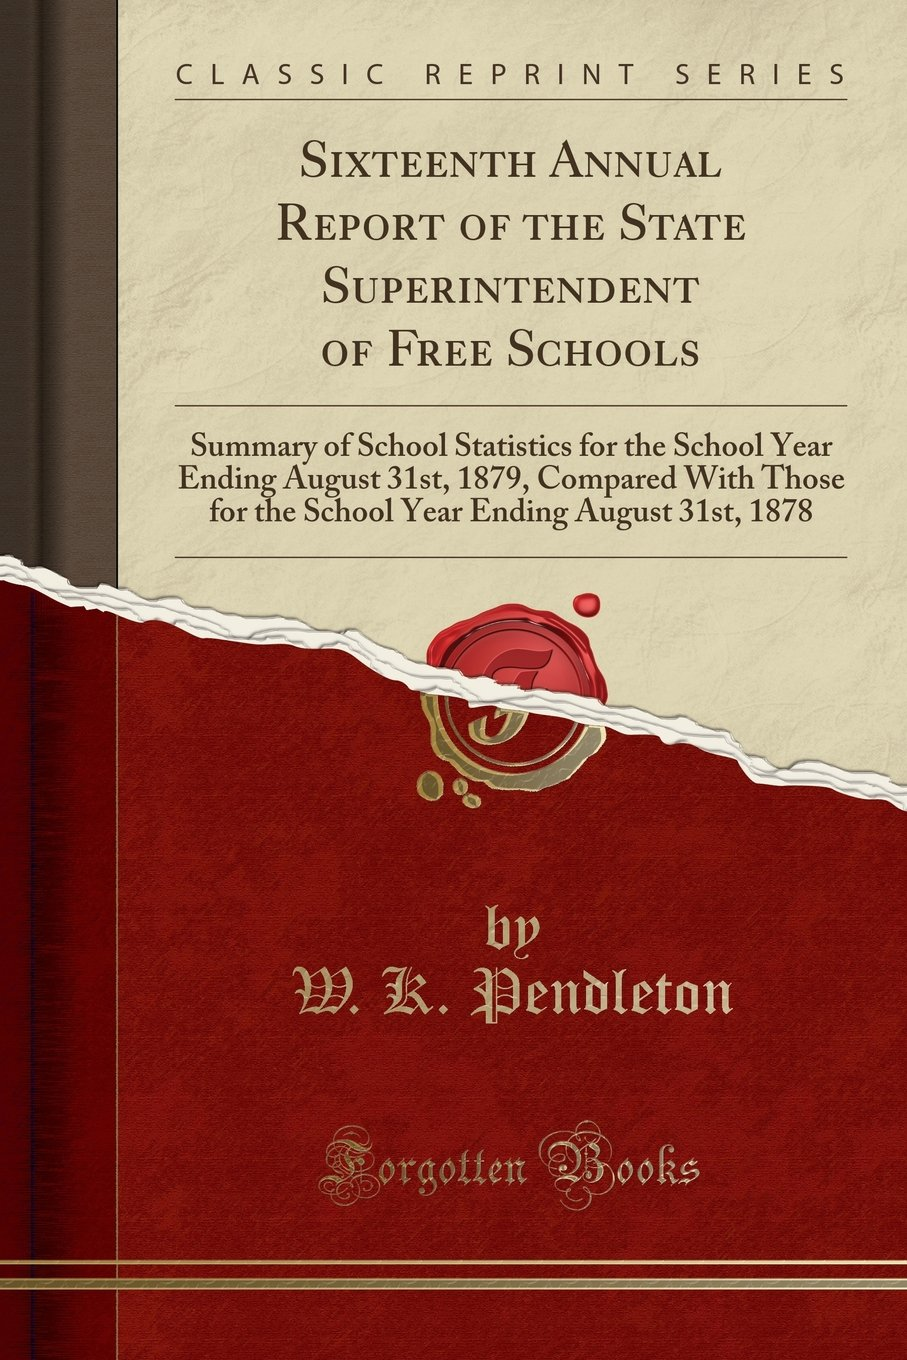 Sixteenth Annual Report of the State Superintendent of Free Schools: Summary of School Statistics for the School Year Ending August 31st, 1879. Ending August 31st, 1878 (Classic Reprint) PDF